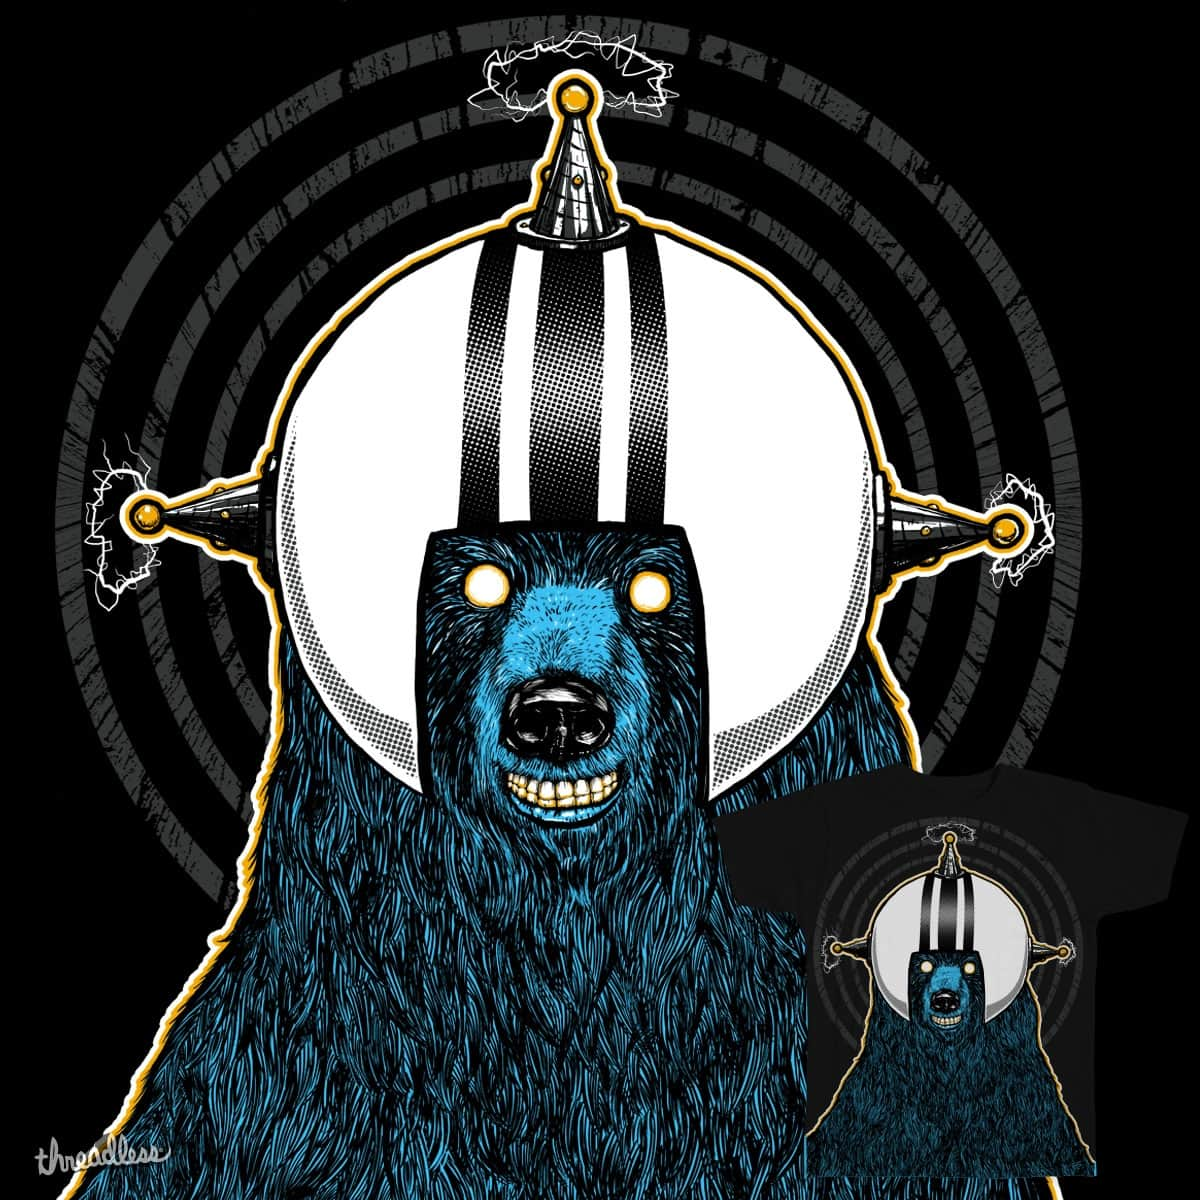 Spacebear by sixstyle on Threadless